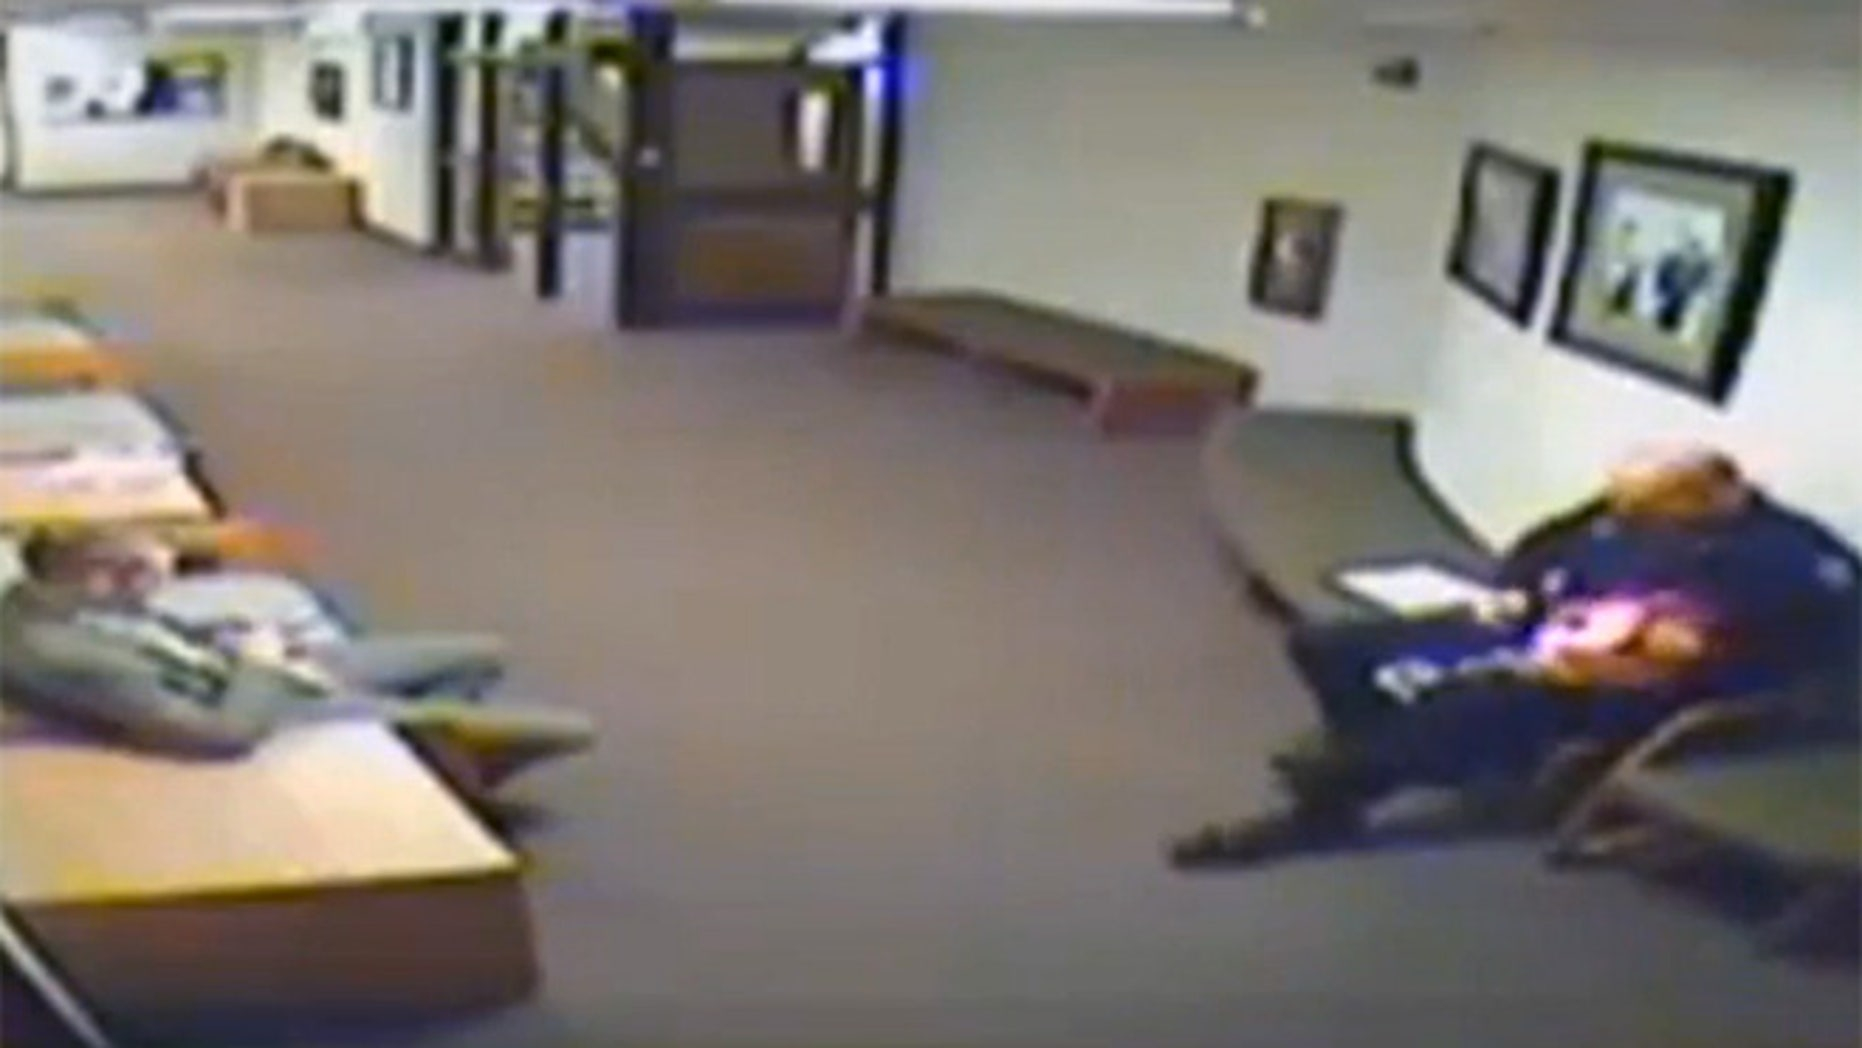 Surveillance video shows the little girl taking the 6 foot, 6 inch tall officer by his finger and walking around the courthouse with him, gathering treats from other deputies.